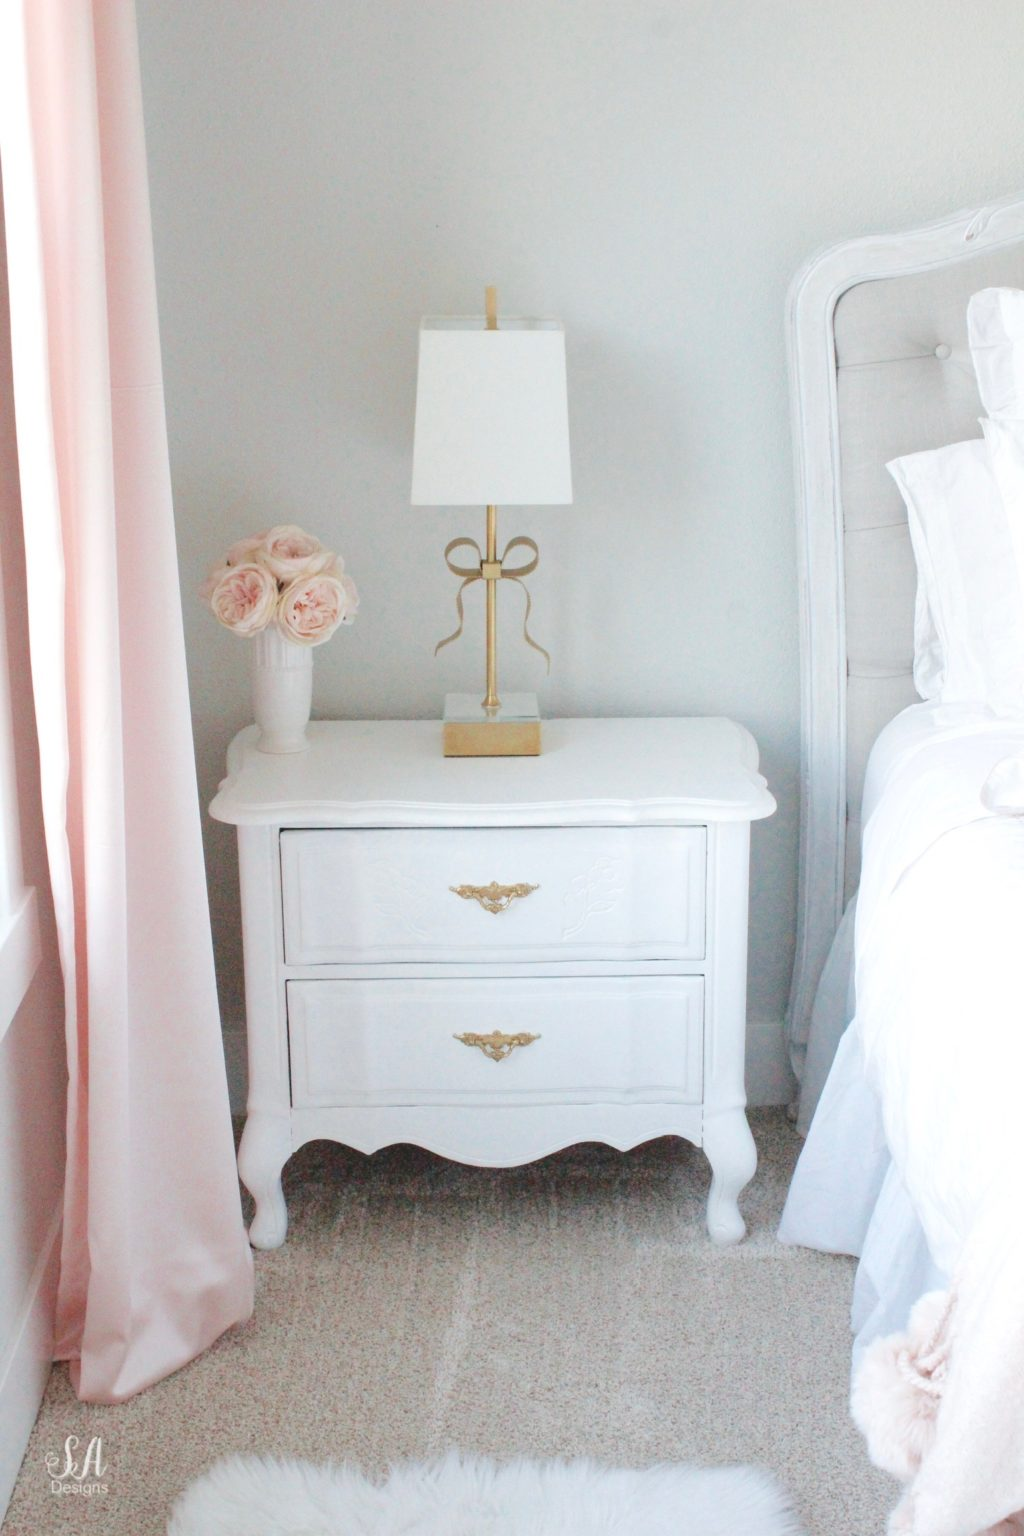 Blush Bedroom, Blush And Gold, Blush Gold Grey, Modern Vintage Style, Modern